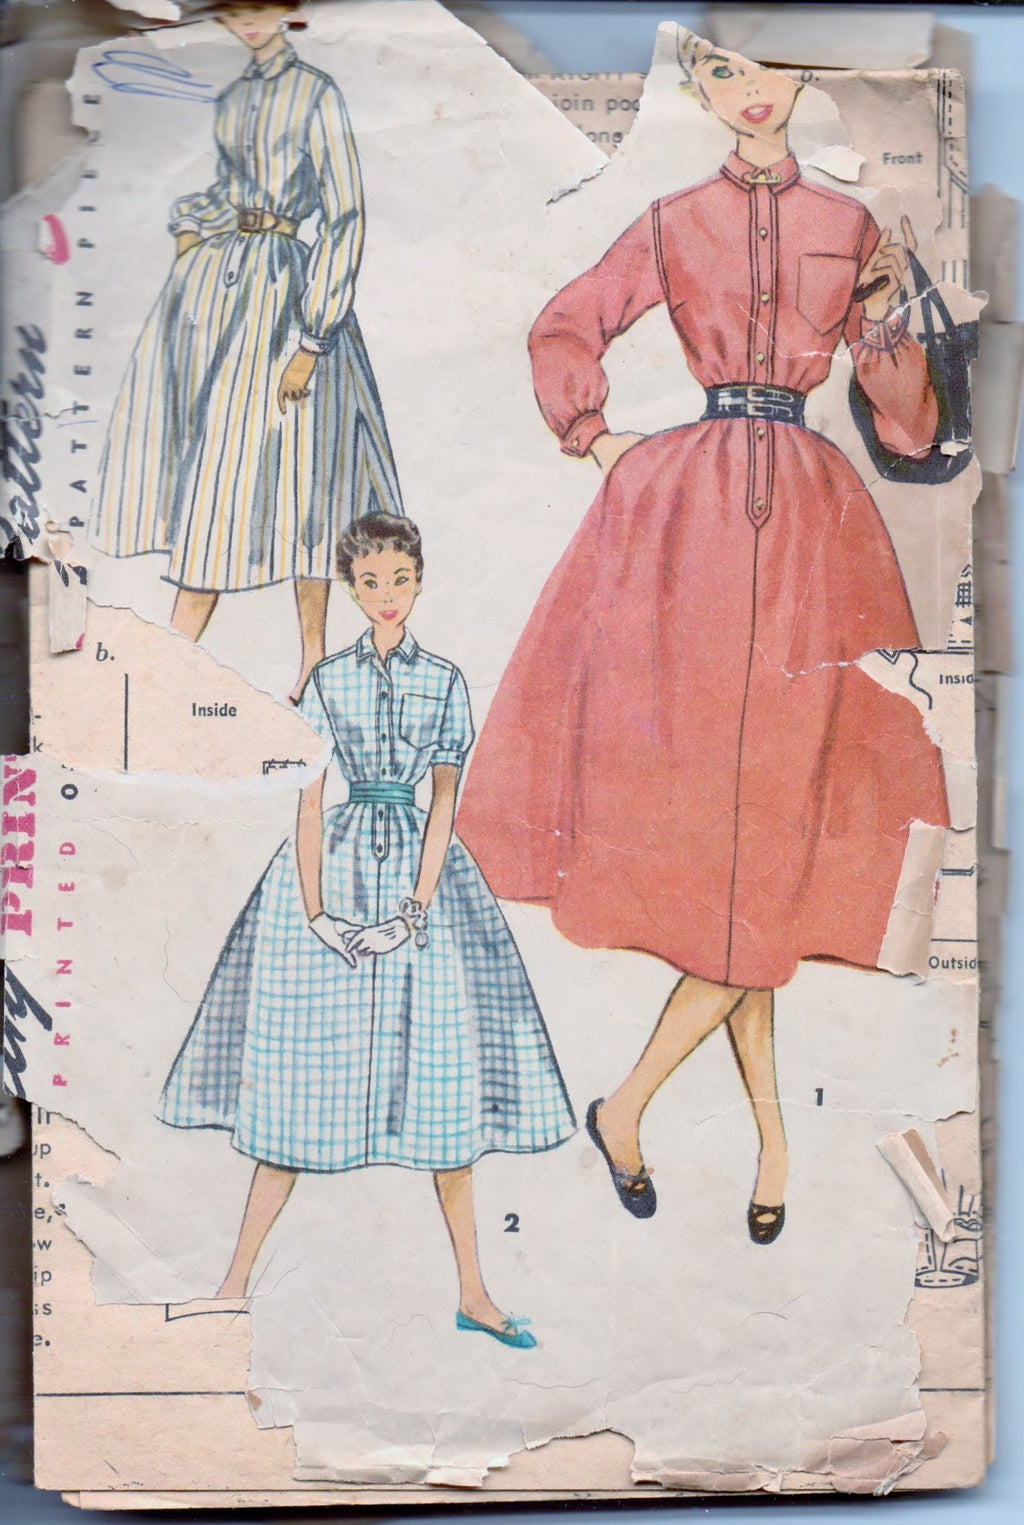 Simplicity 4771 Teens One Piece Dress Vintage 1950's Sewing Pattern Size 12 Bust 30 - VintageStitching - Vintage Sewing Patterns